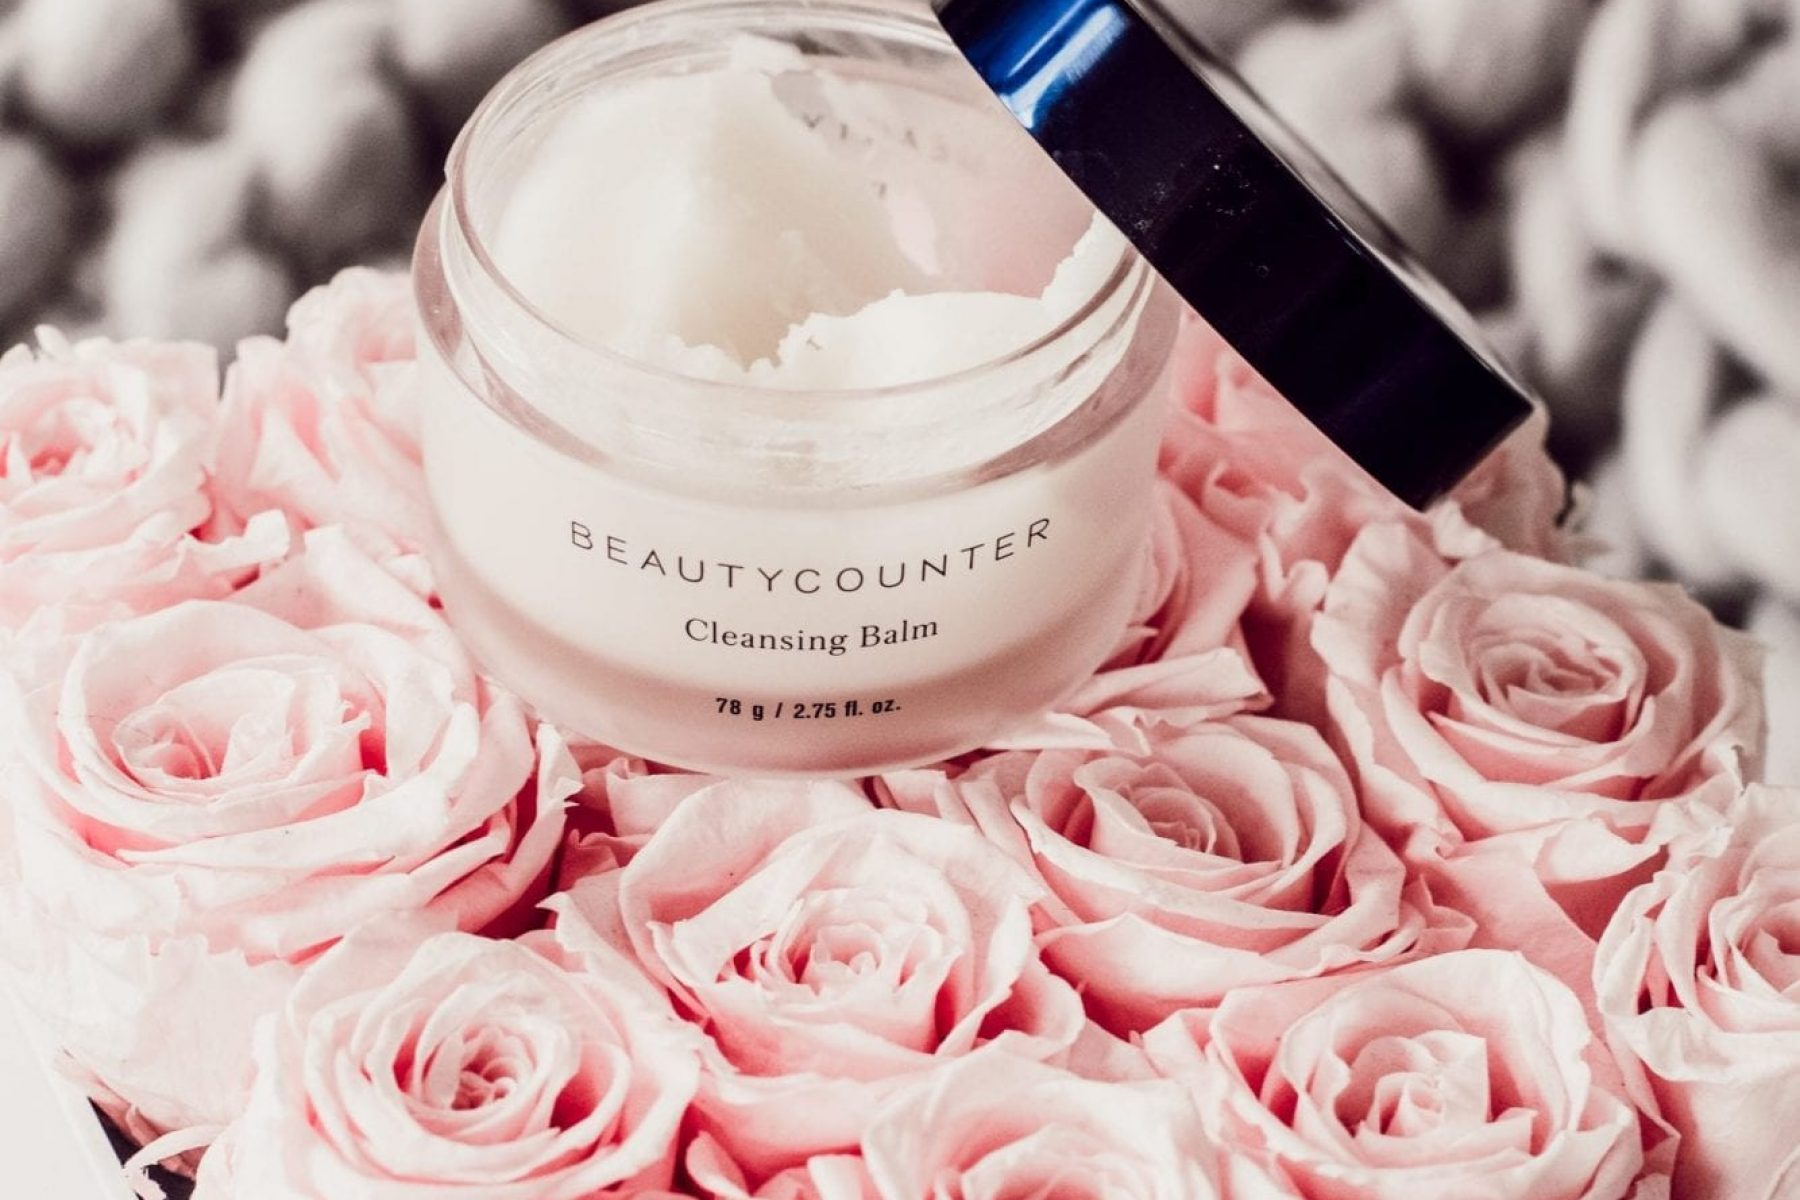 10 Ways to Use Beautycounter Cleansing Balm (83 of 6)